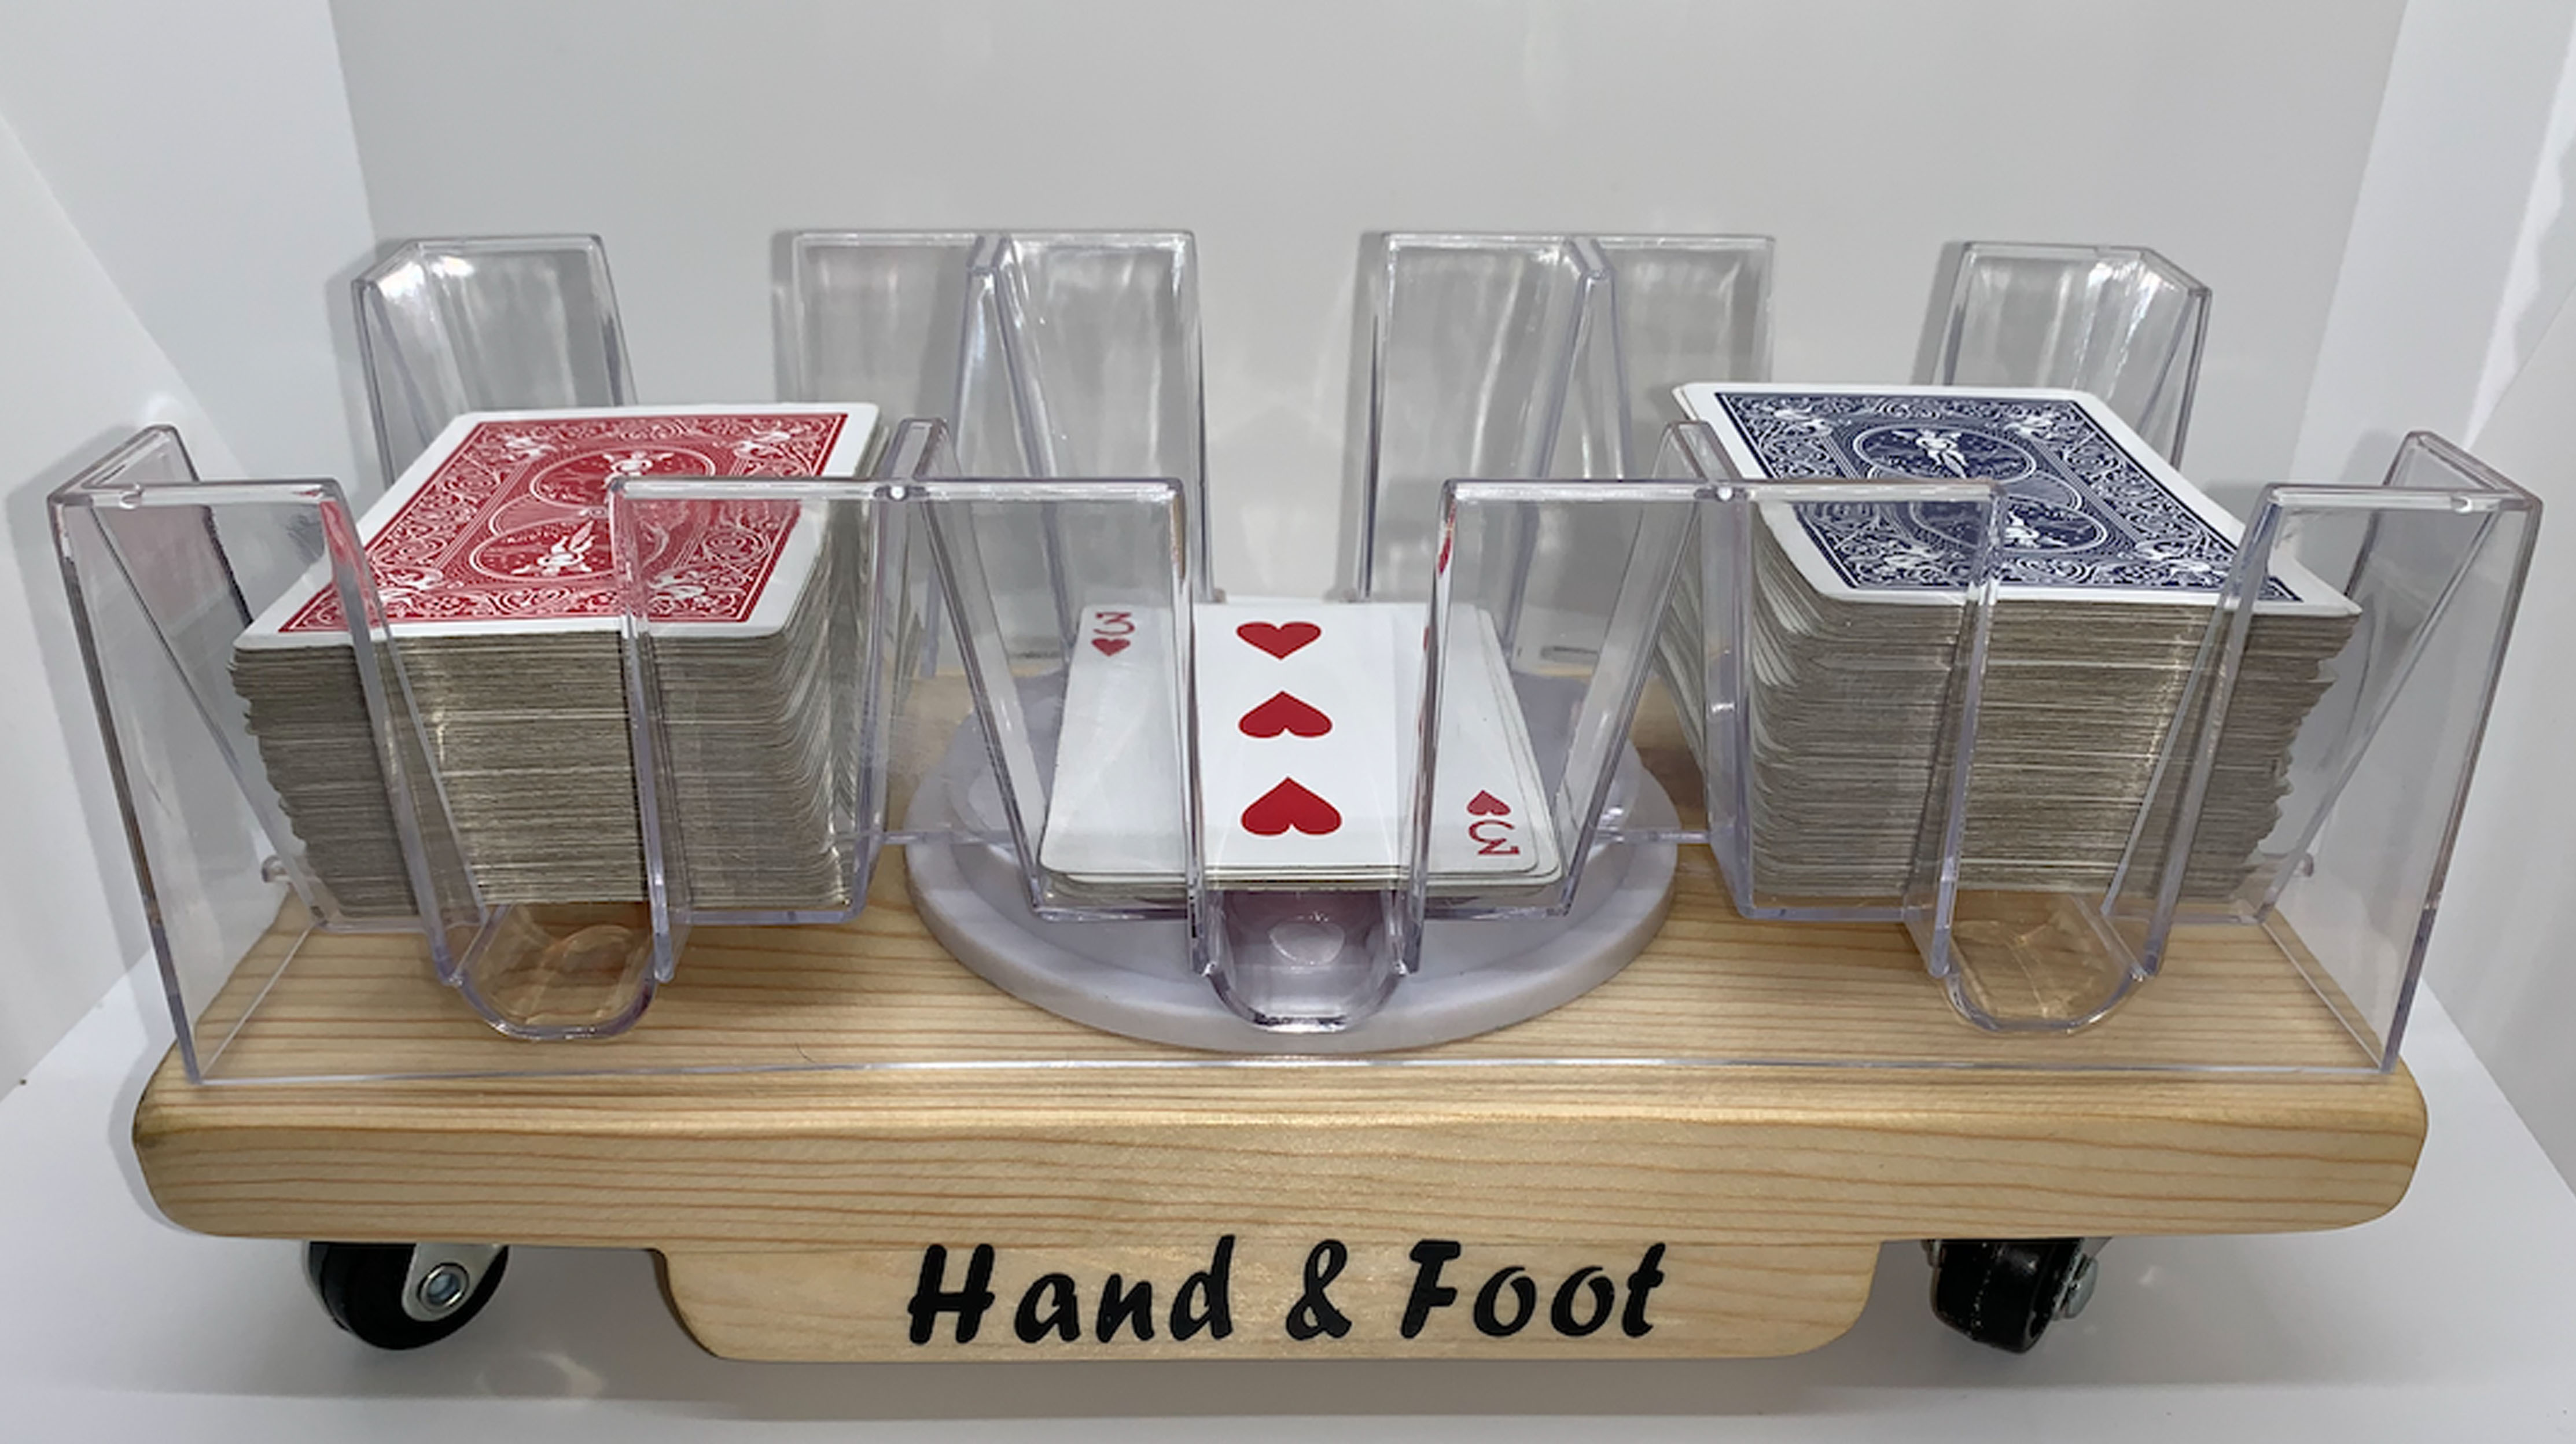 3 Deck Rolling Hand and foot